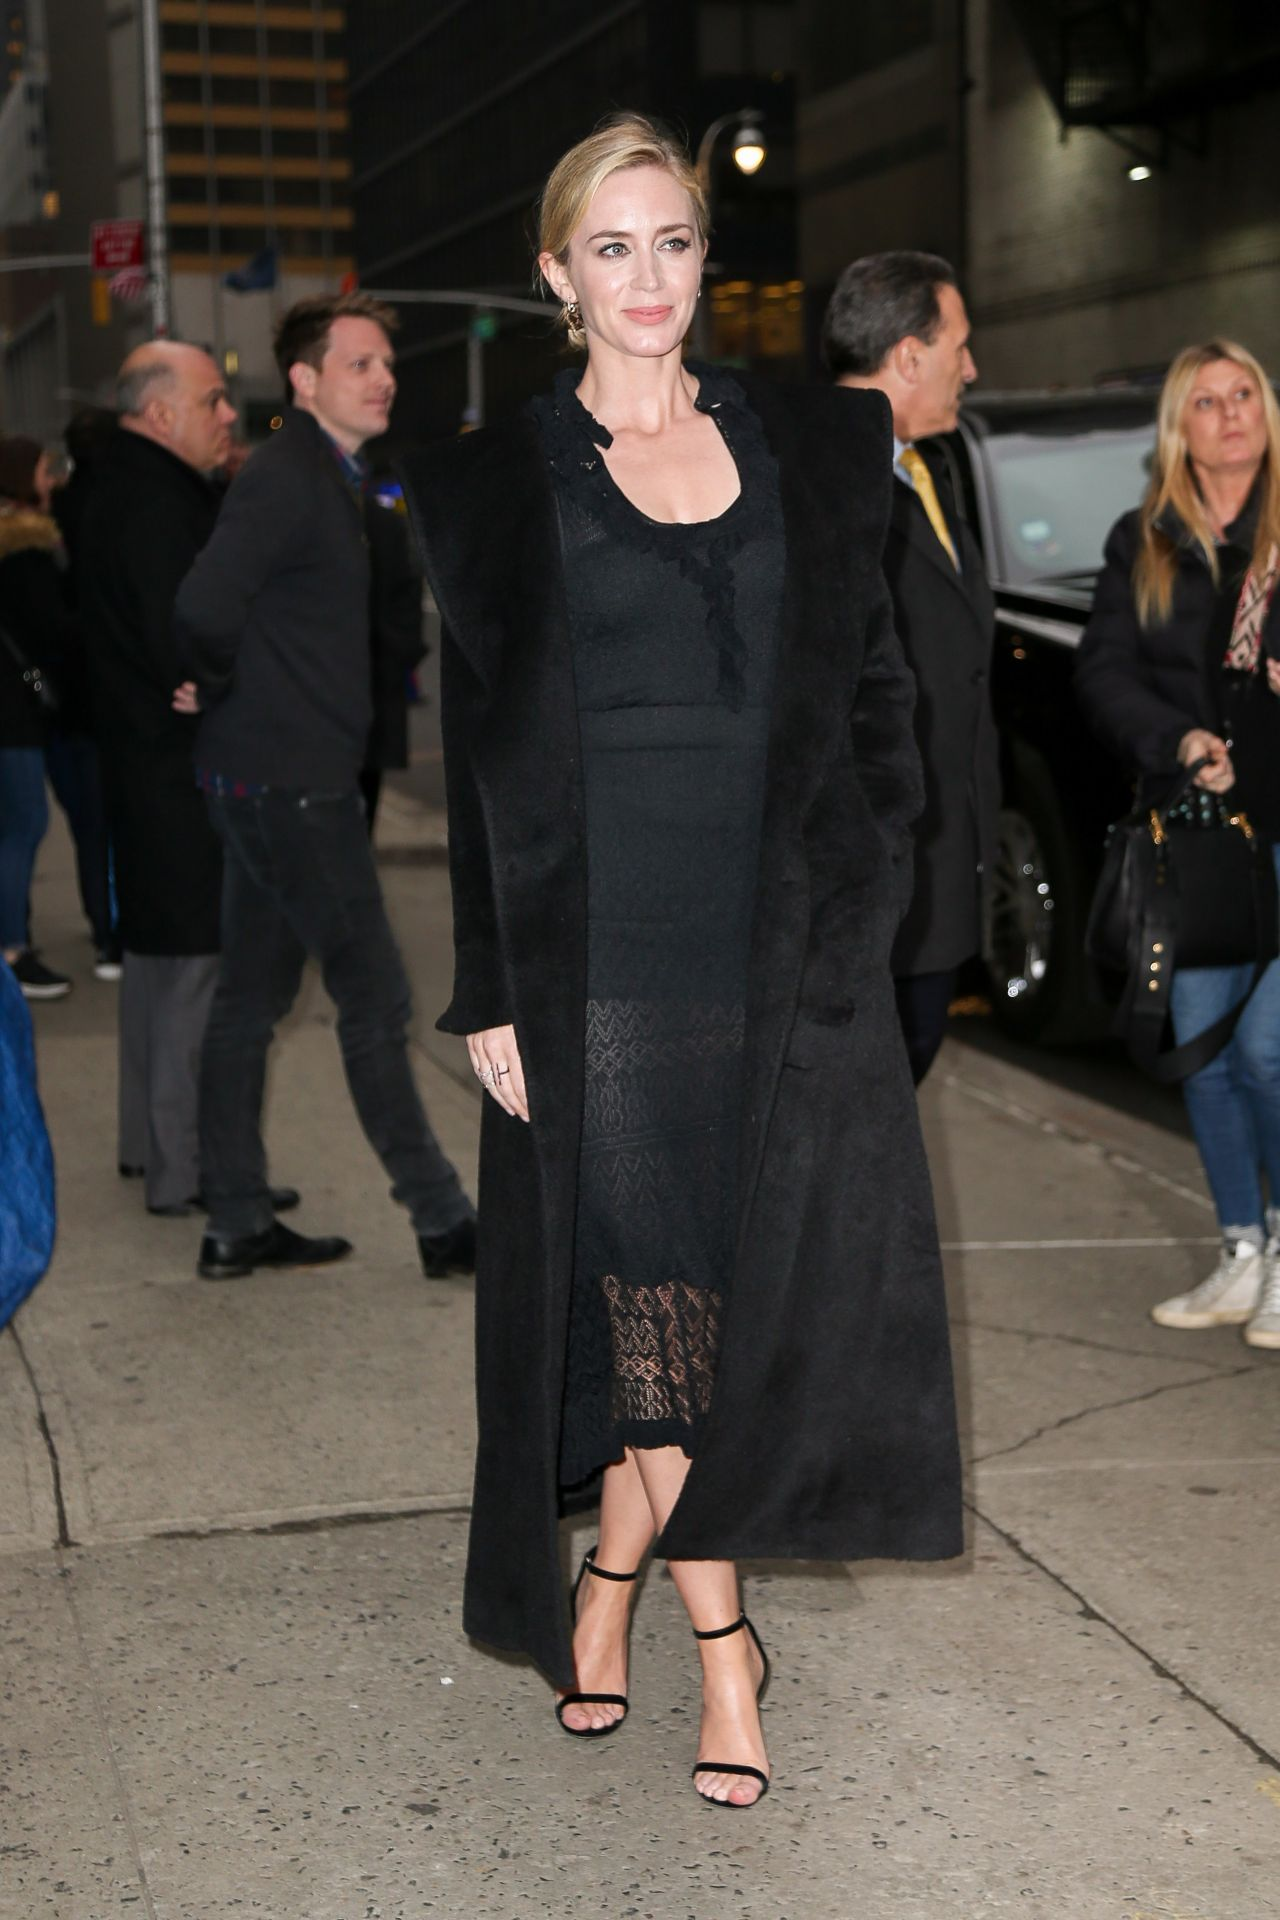 emily-blunt-outside-the-late-show-with-stephen-colbert-in-nyc-03-29-2018-9.jpg